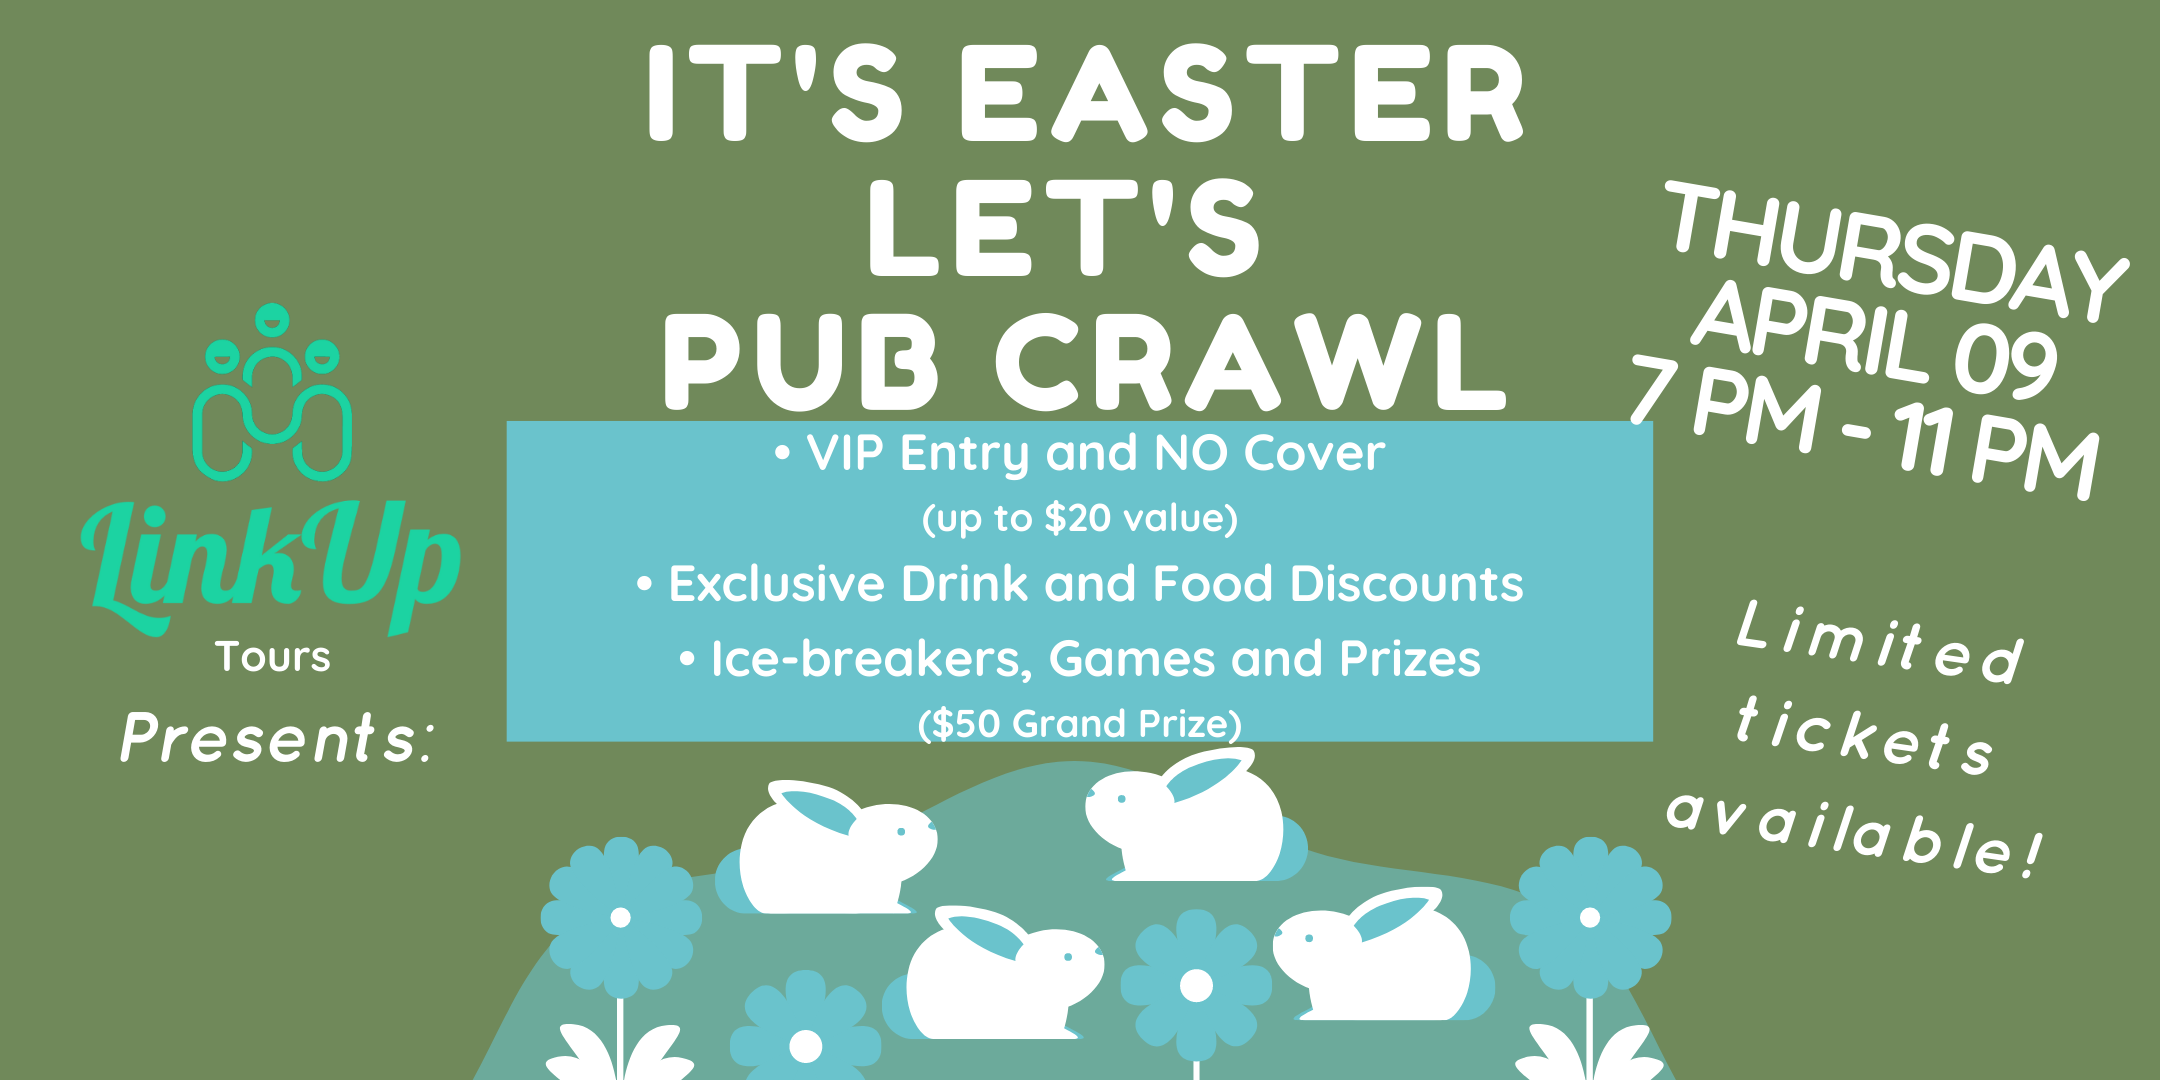 Easter Pub Crawl